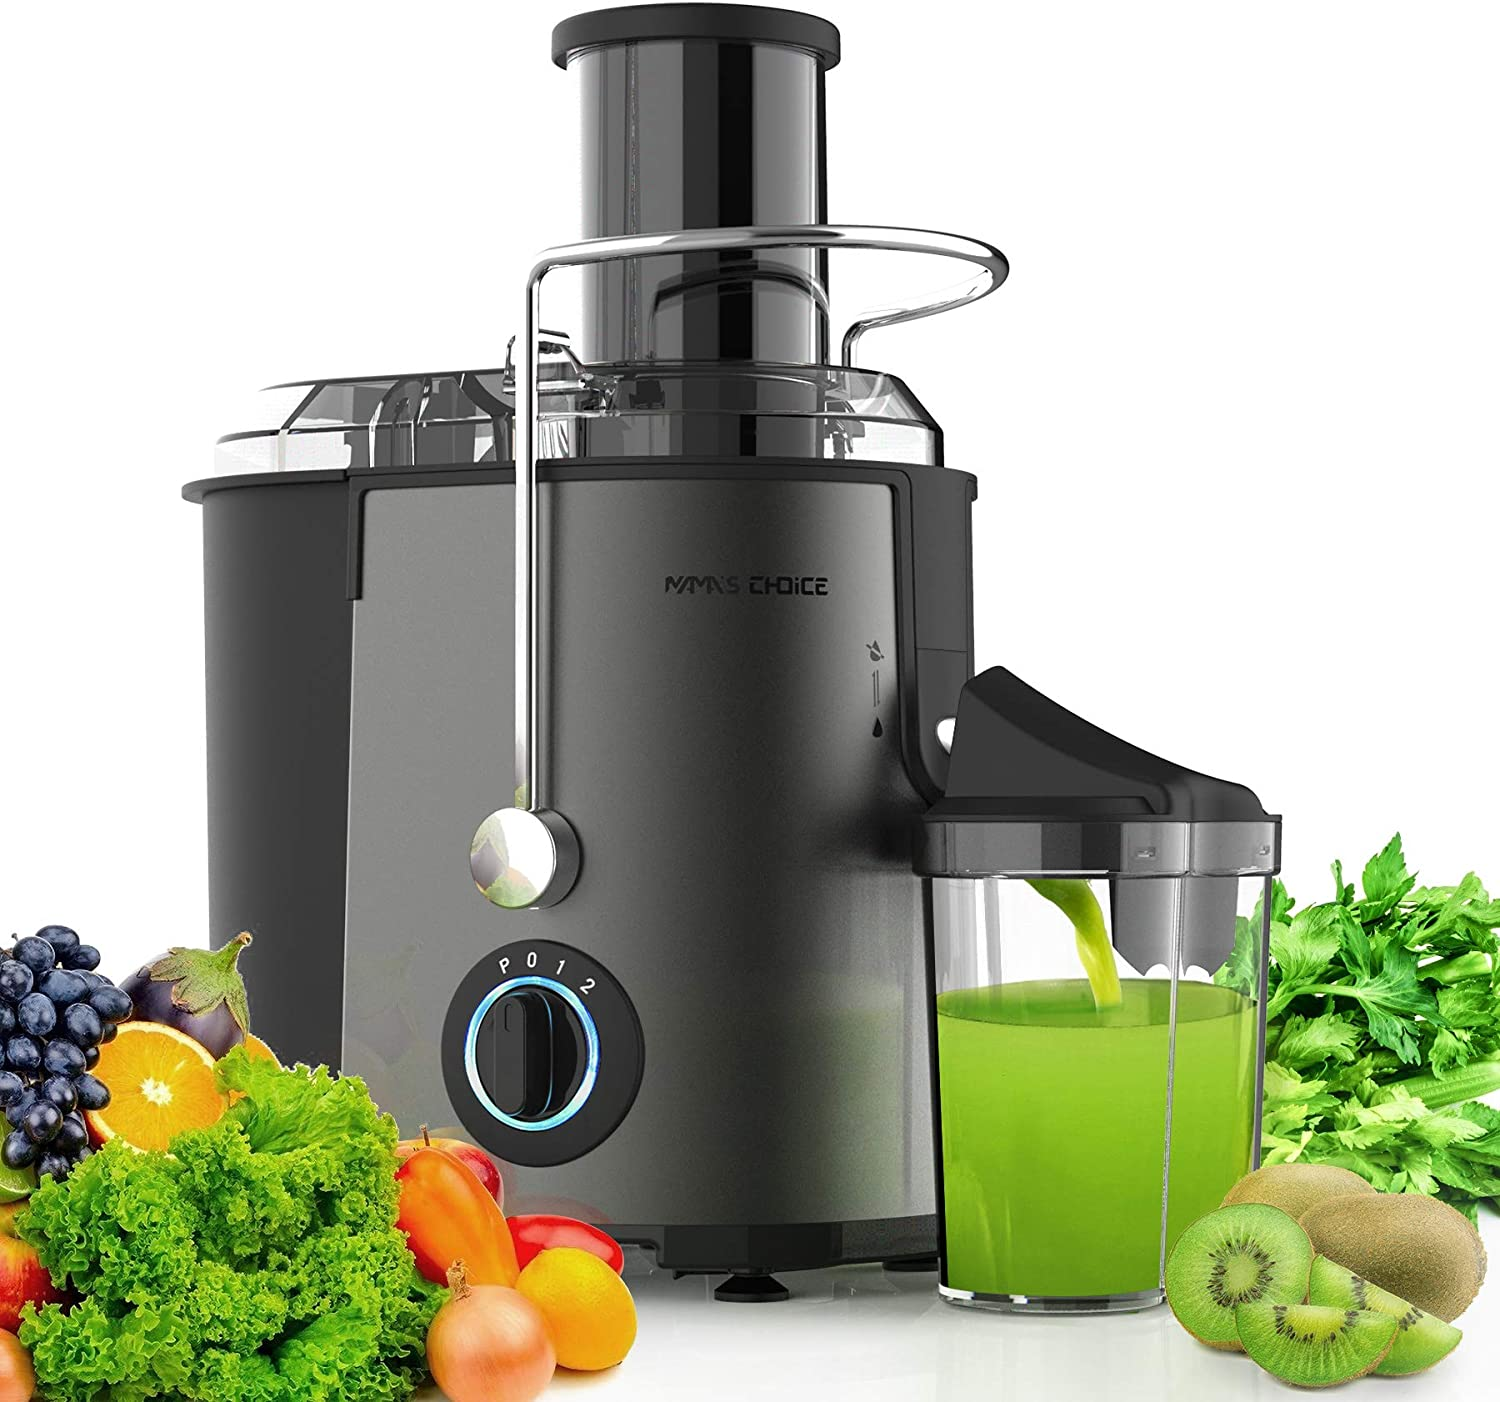 MAMA'S CHOICE Juicer Machine, 800W Juice Extractor with Big Feed Chute for Fruits Vegetables, Centrifugal Juicer, 3 Speed Control, Stainless Steel Juicer with Anti-drip Function, Dishwasher Safe, Gray